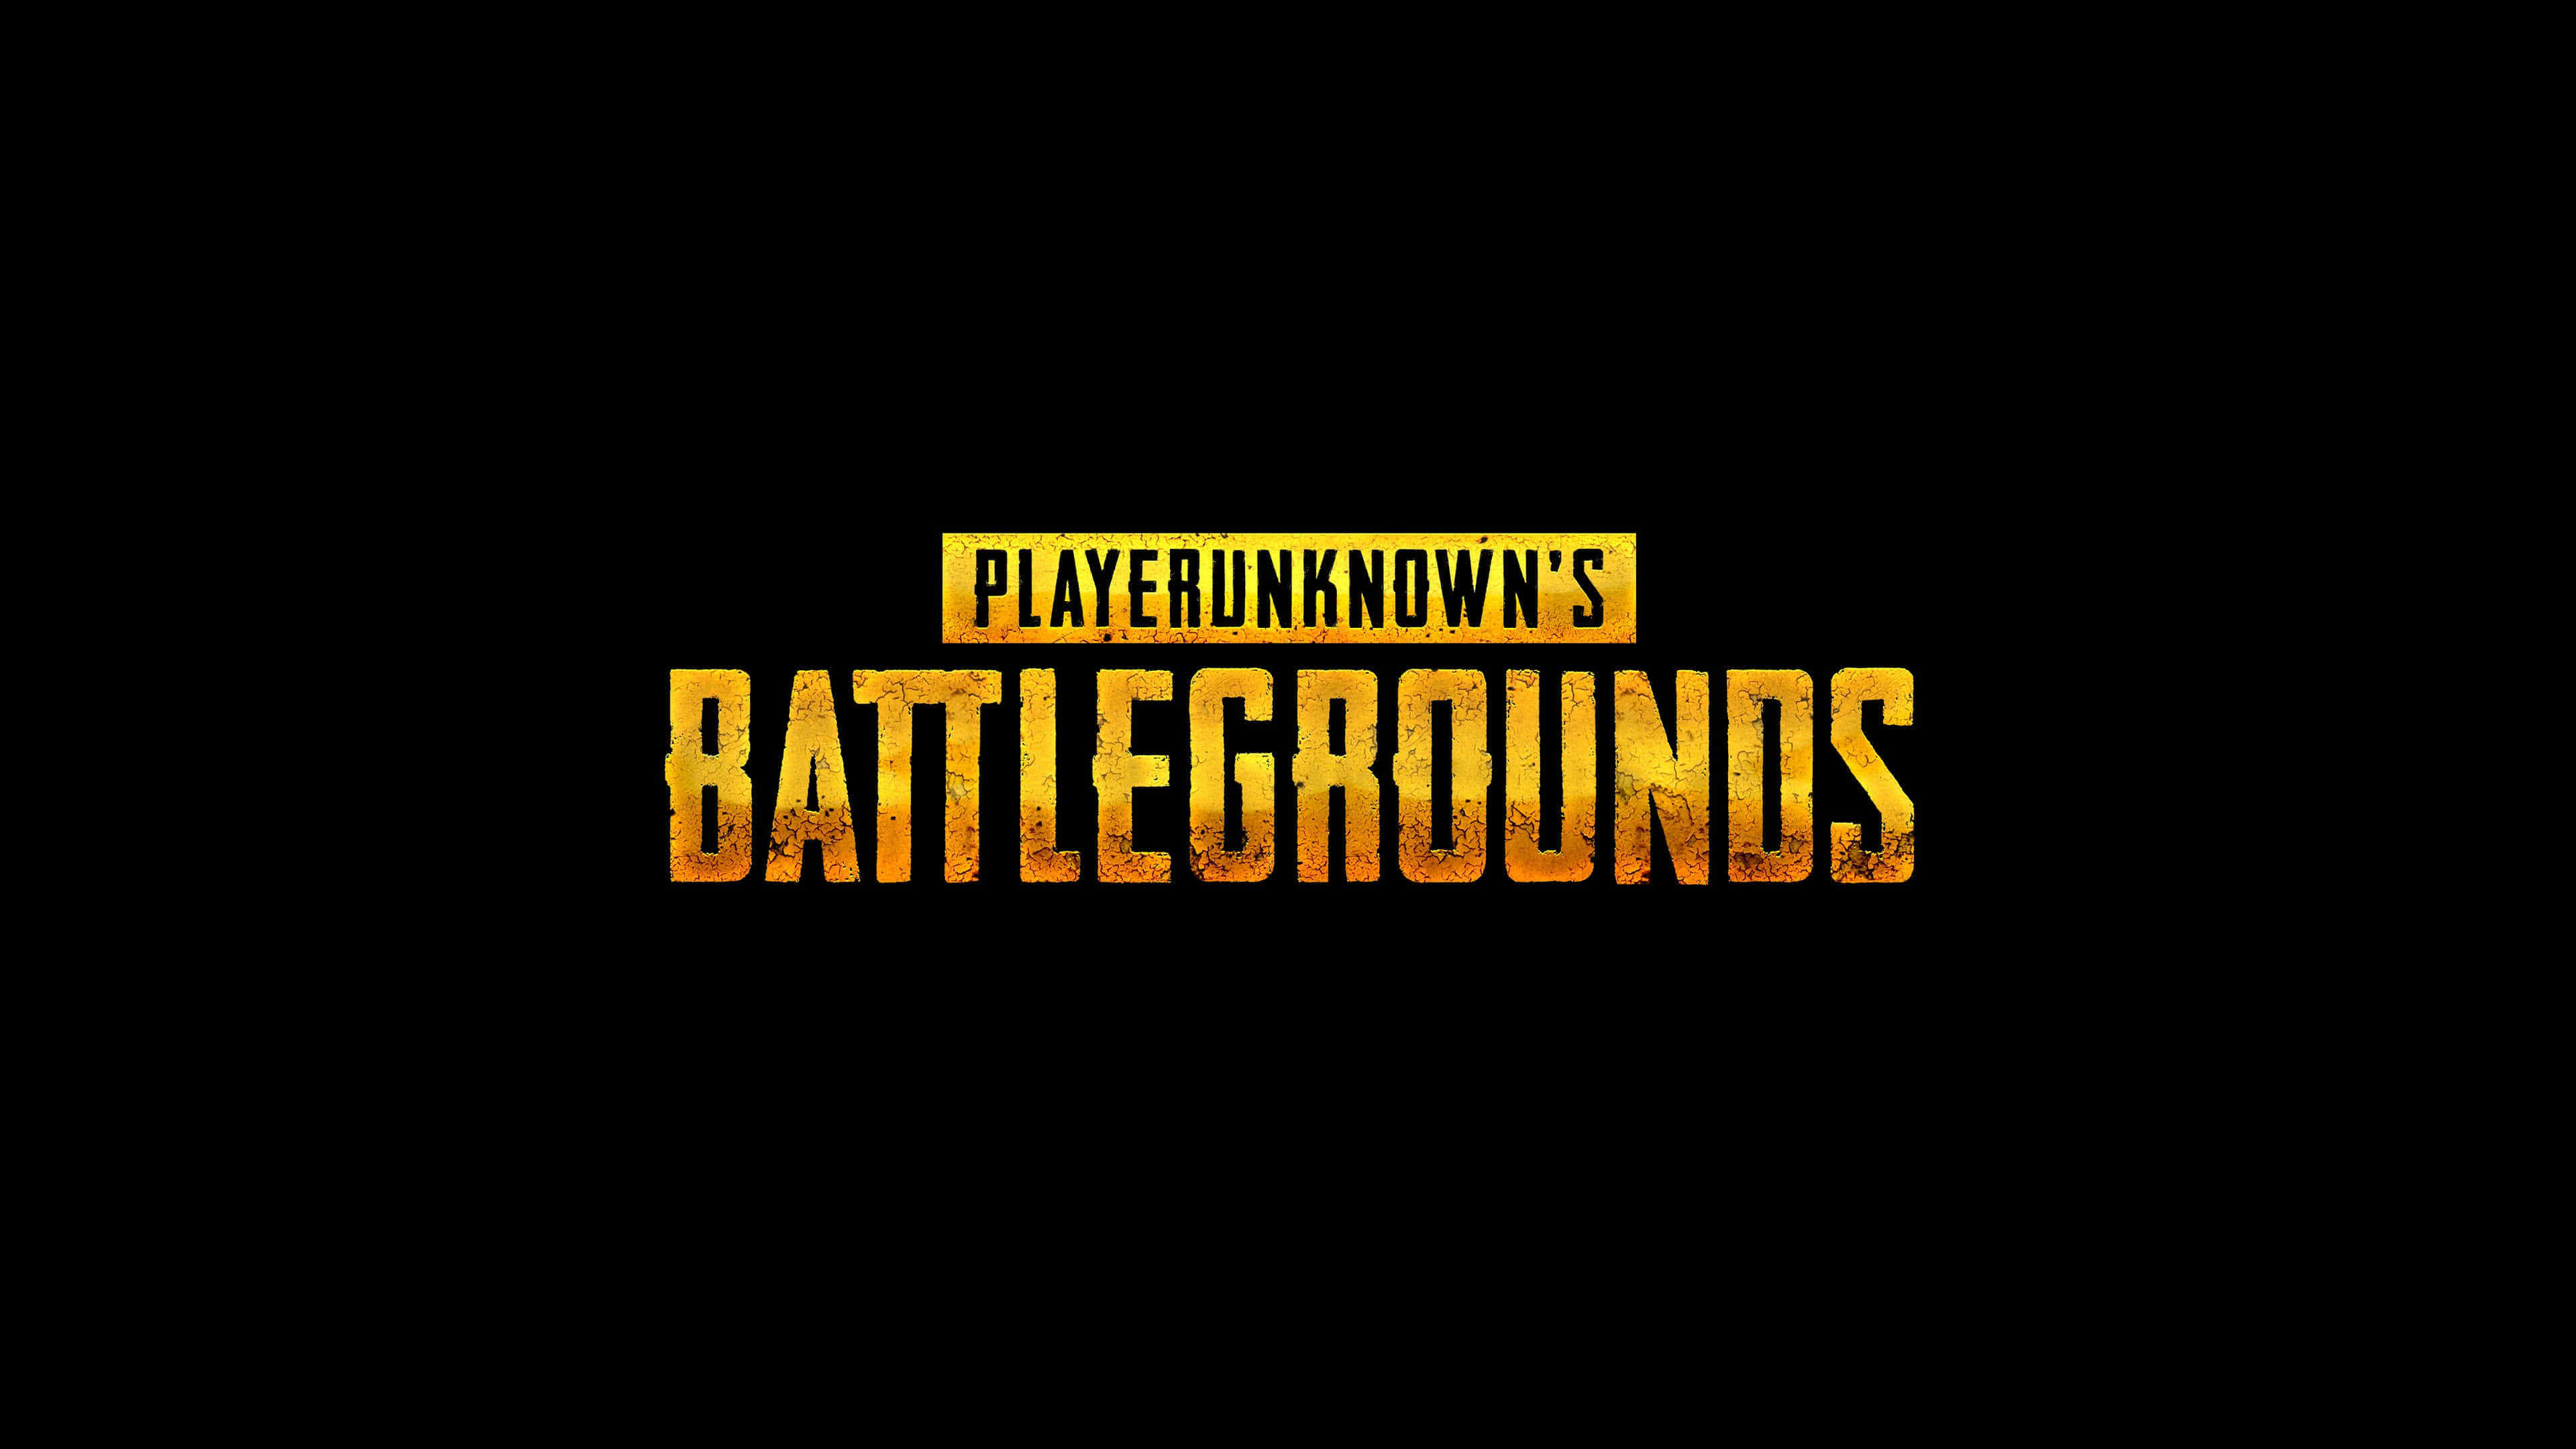 PUBG Player Unknown Battlegrounds Logo UHD 4K Wallpaper Pixelz